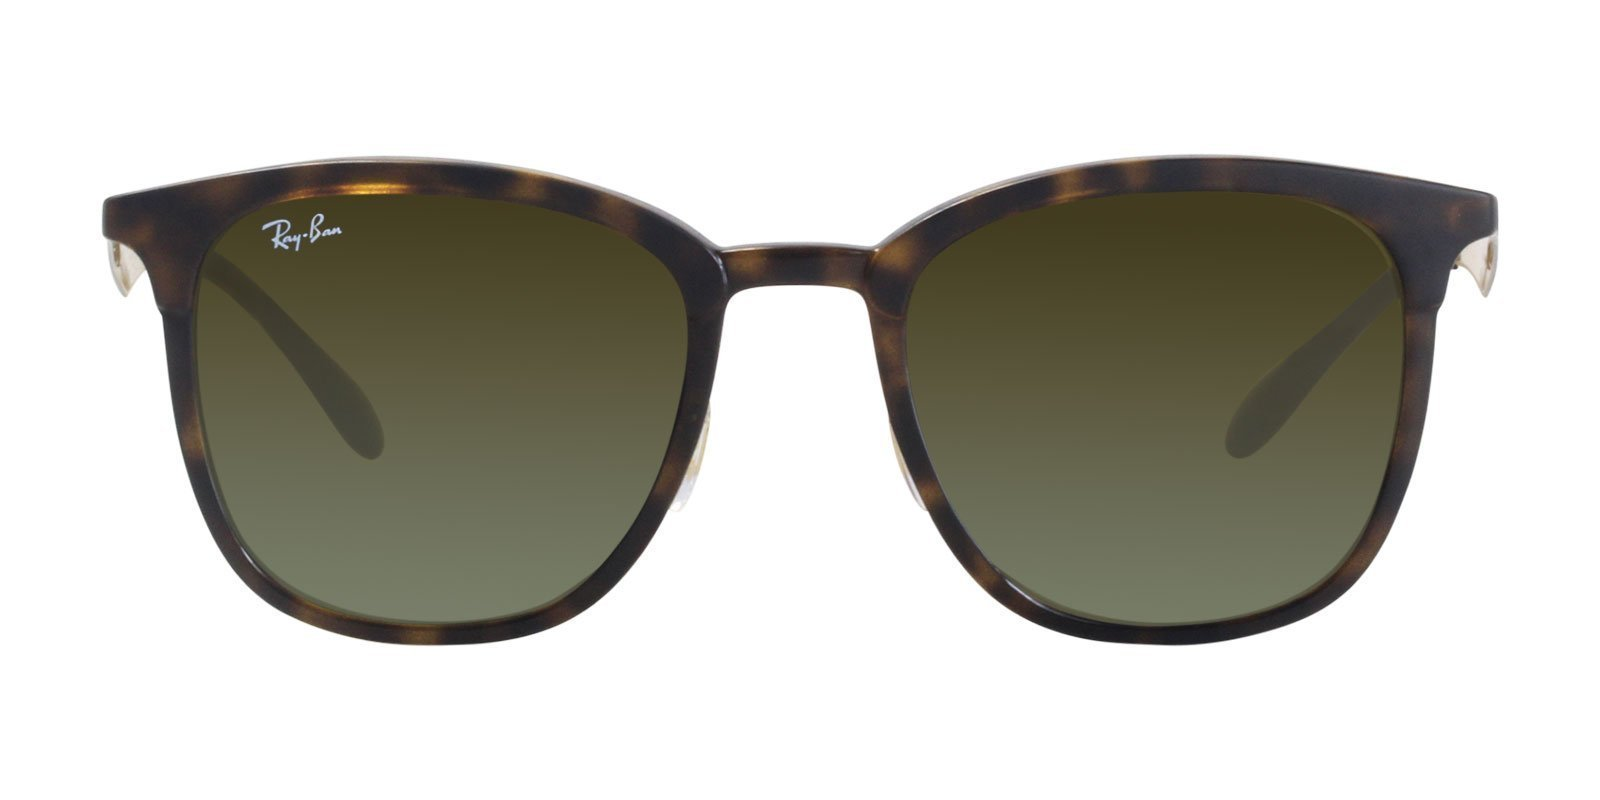 Ray Ban - RB4278 Tortoise Oval Unisex Sunglasses - 51mm-Sunglasses-Designer Eyes